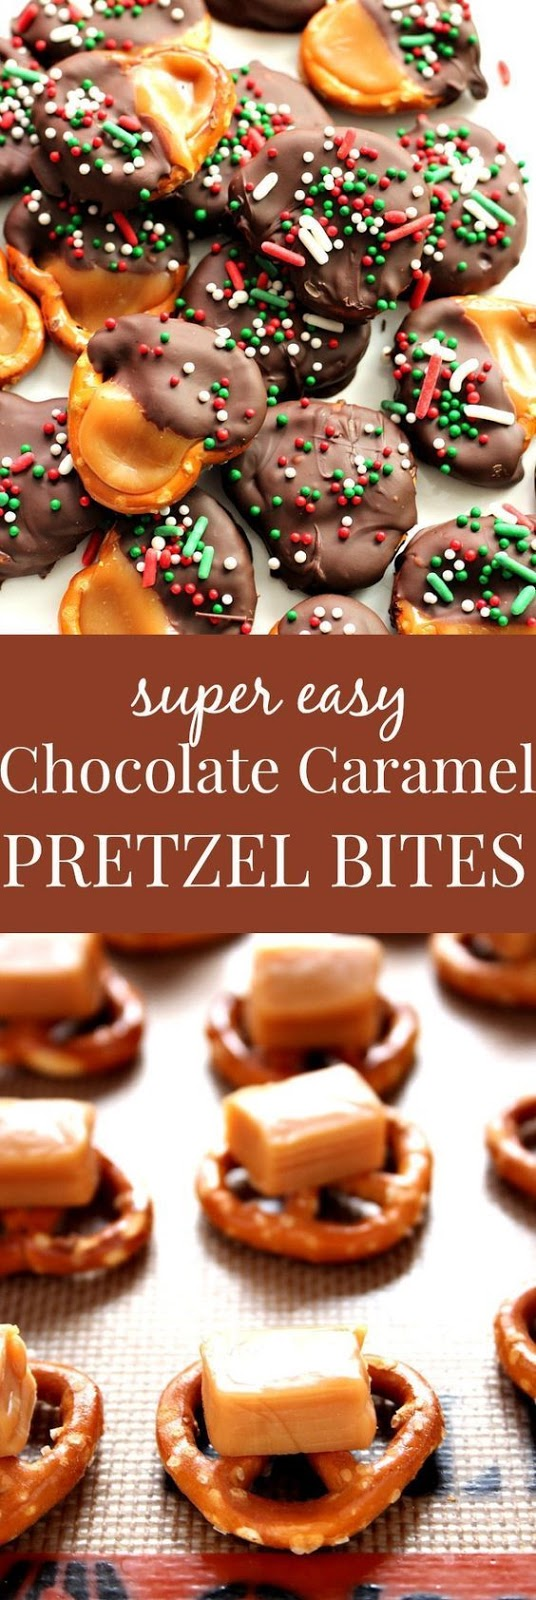 Easy Chocolate Caramel Pretzel Bites Recipe #christmasrecipes